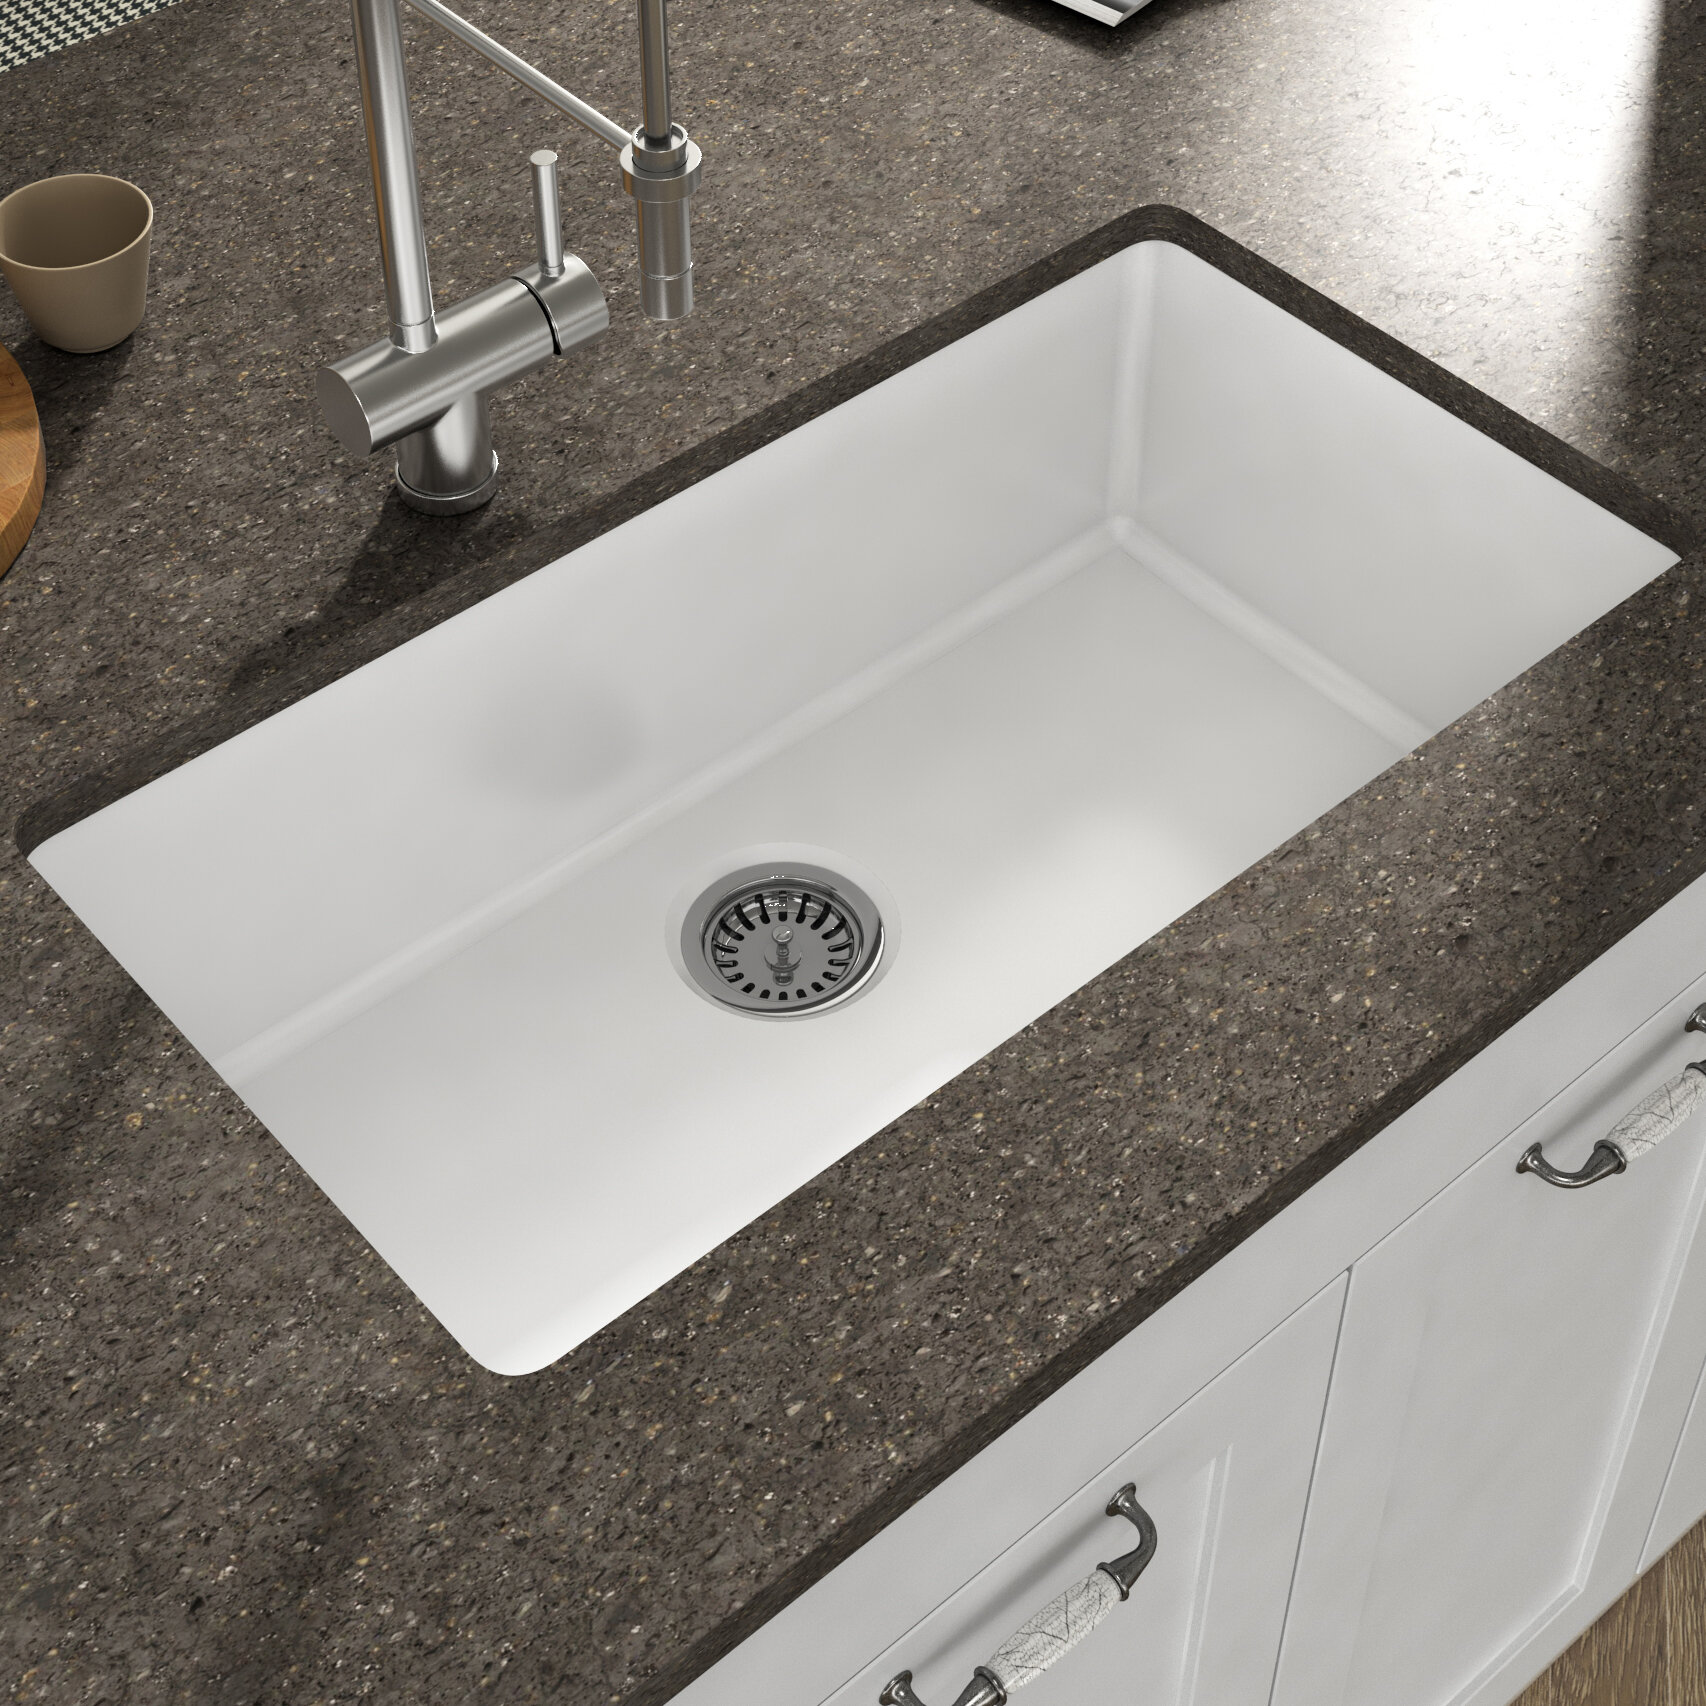 Empire Industries Yorkshire Undermount Fireclay 31 5 L X 18 3 W Farmhouse Kitchen Sink With Grid And Strainer Reviews Wayfair